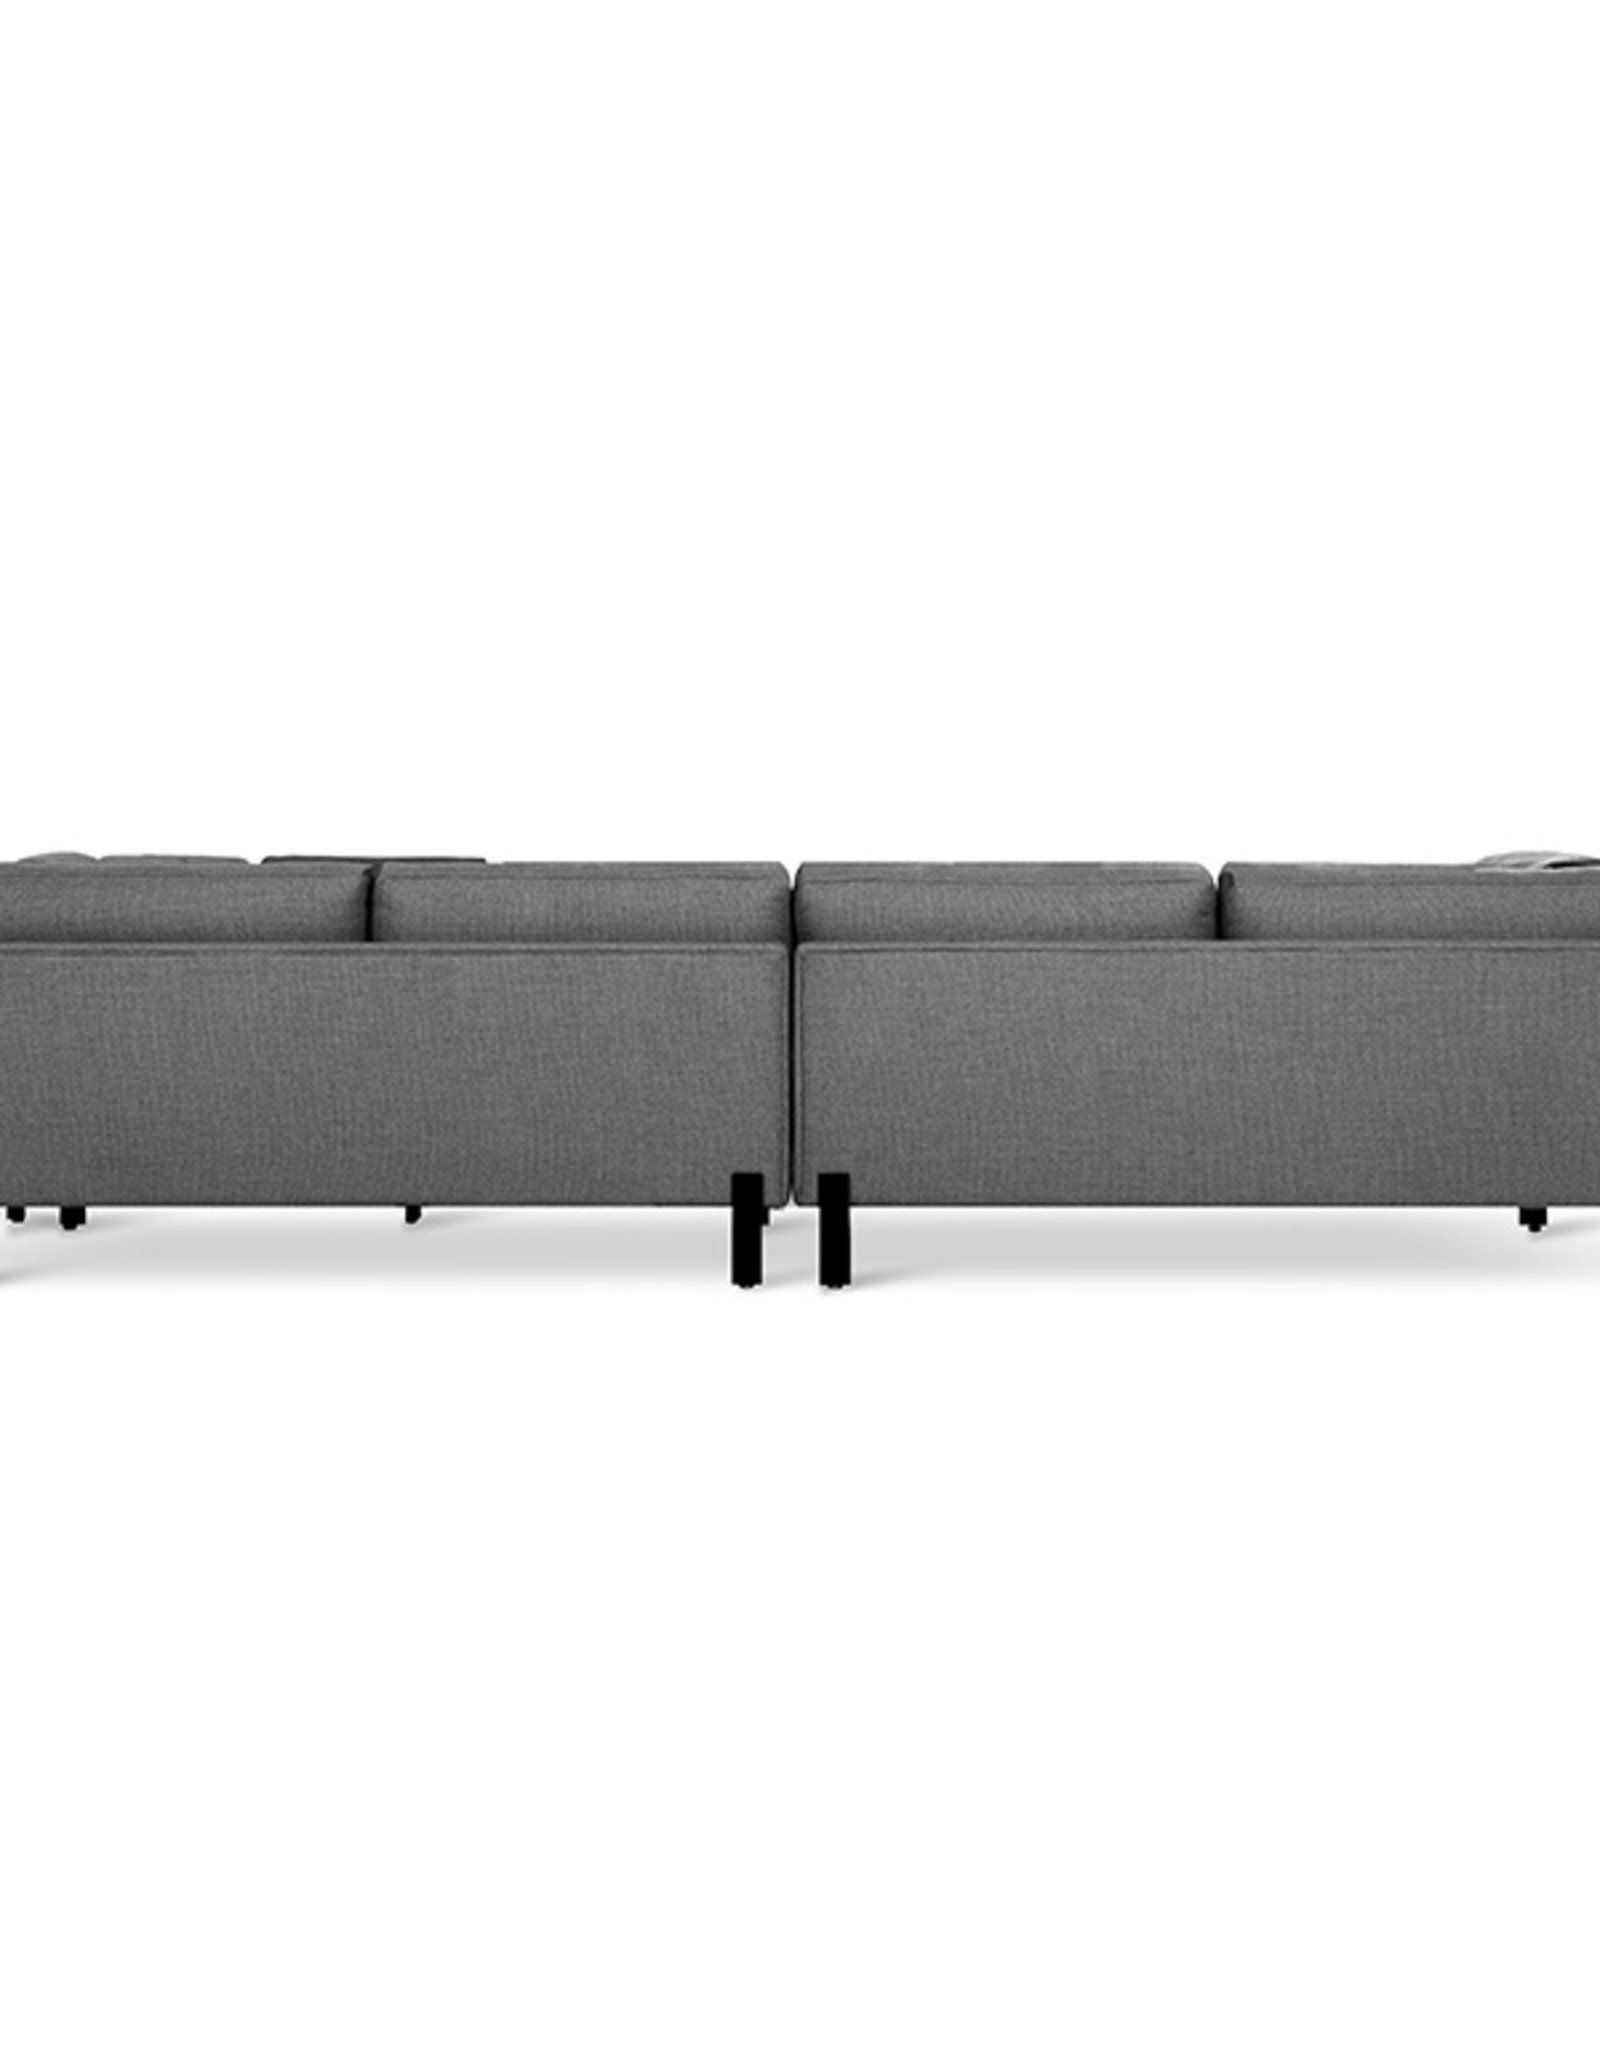 Gus* Modern Silverlake XL Sectional, Right-facing